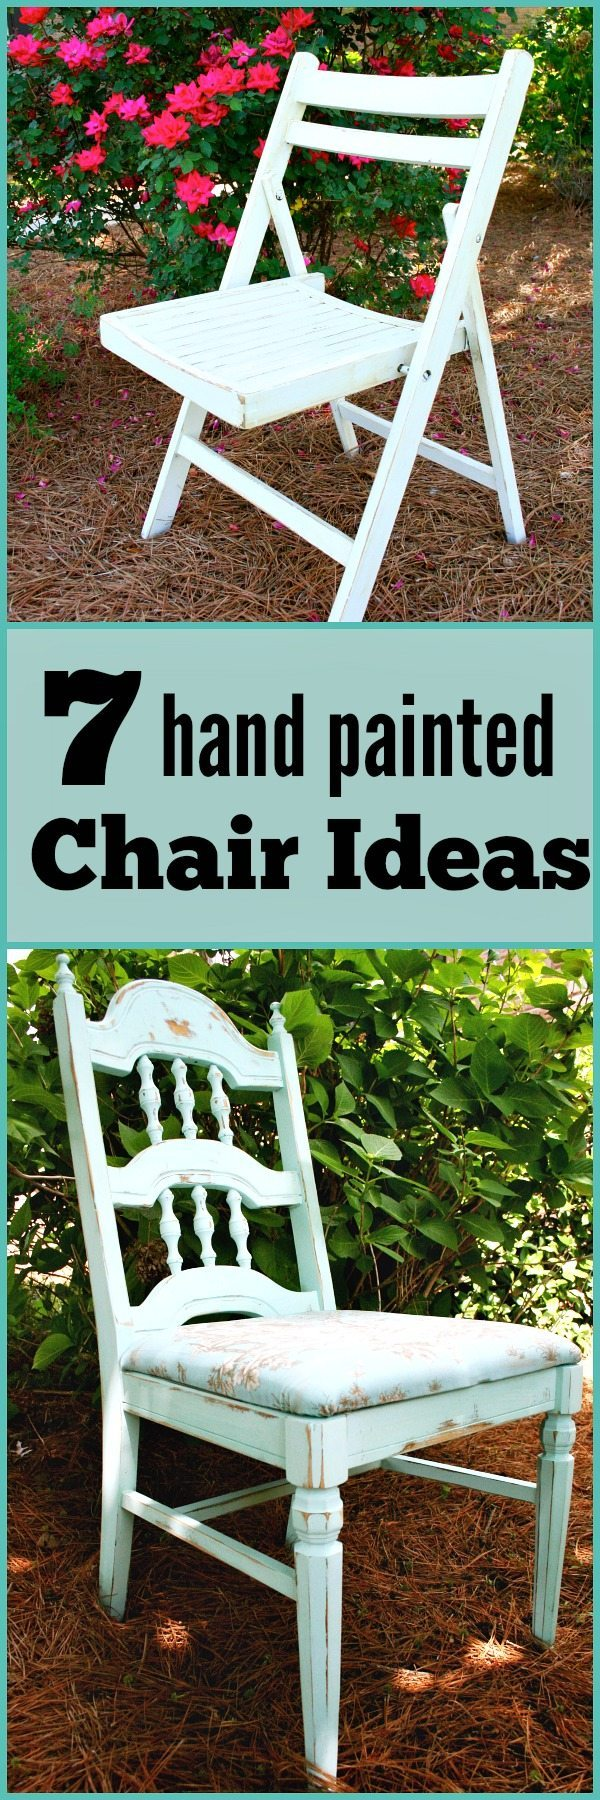 Seven Hand Painted Chair Ideas